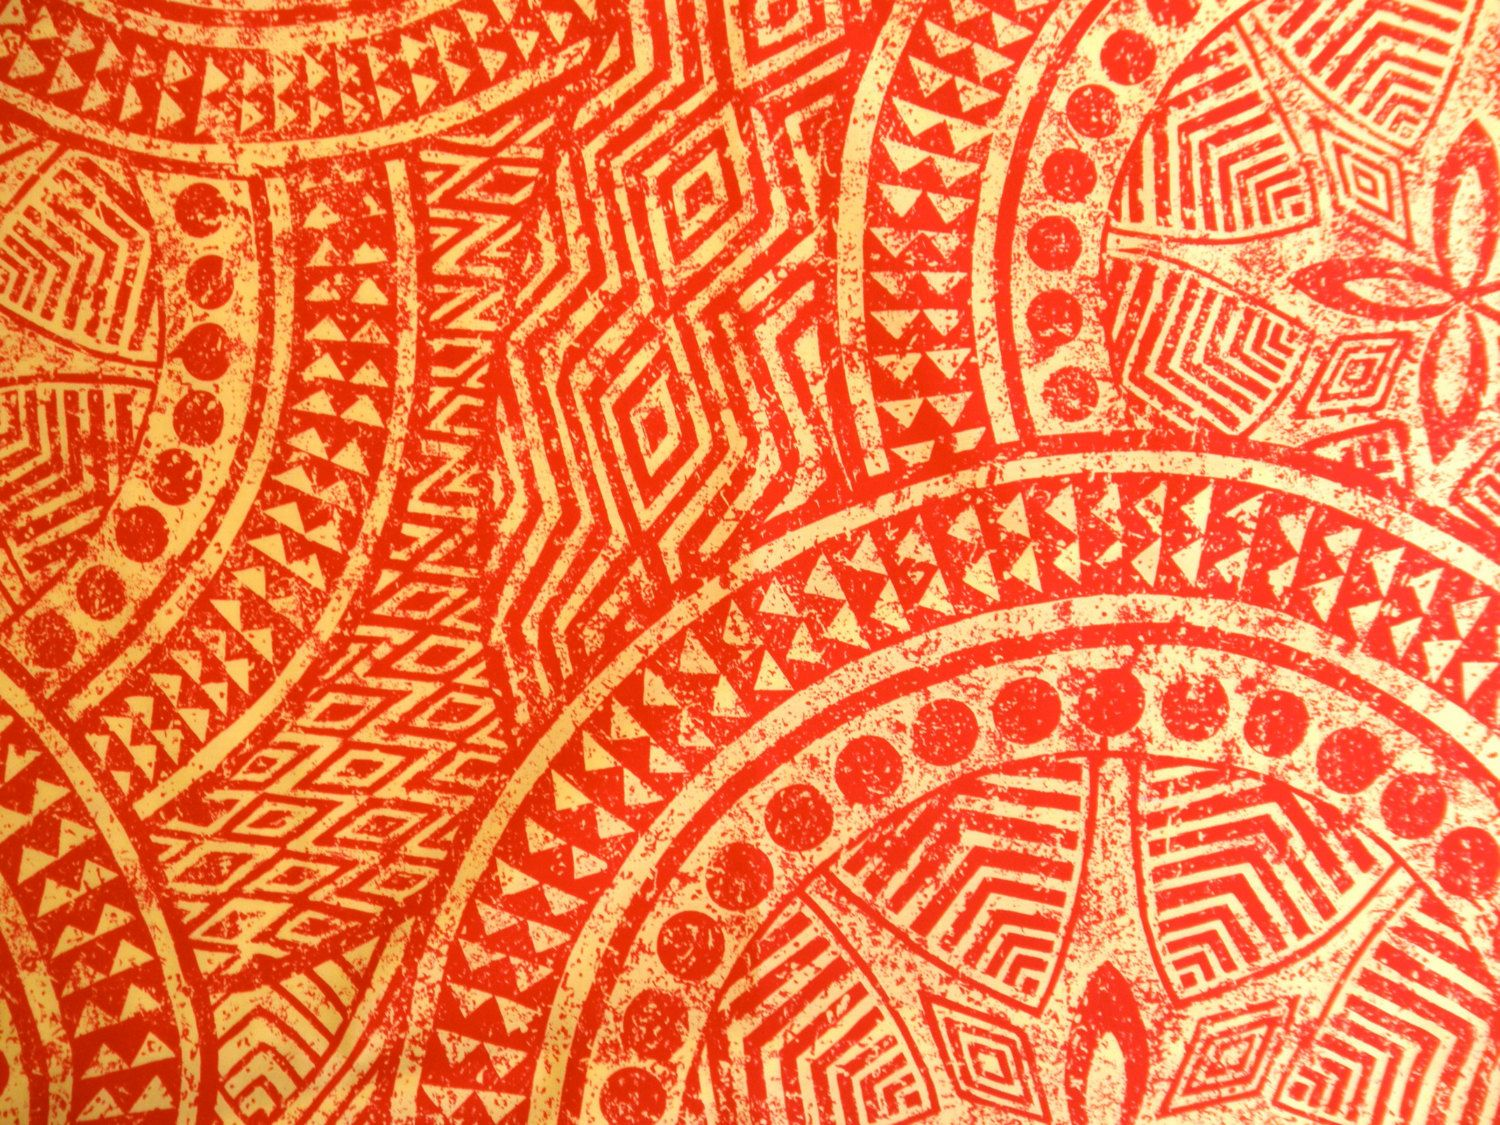 Red Tribal Fabric Patterns | www.imgkid.com - The Image ...